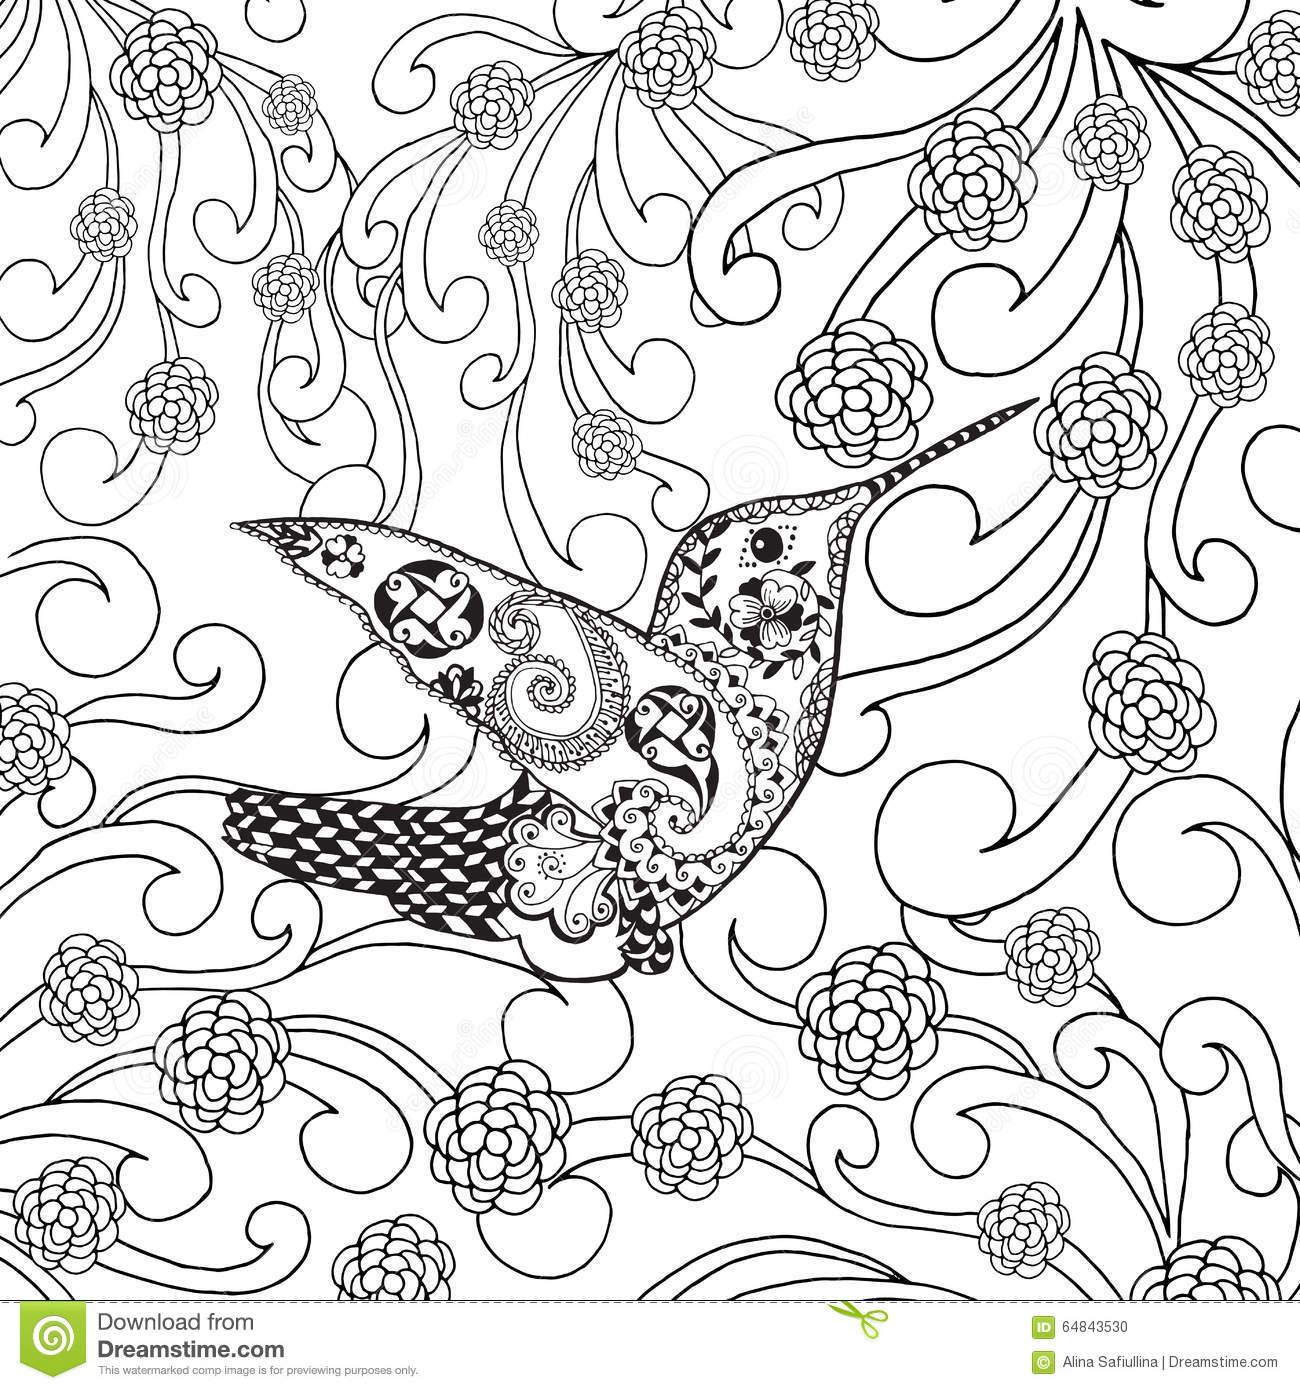 Garden Animals Coloring Pages : Zentangle stylized tropical bird in flower garden stock